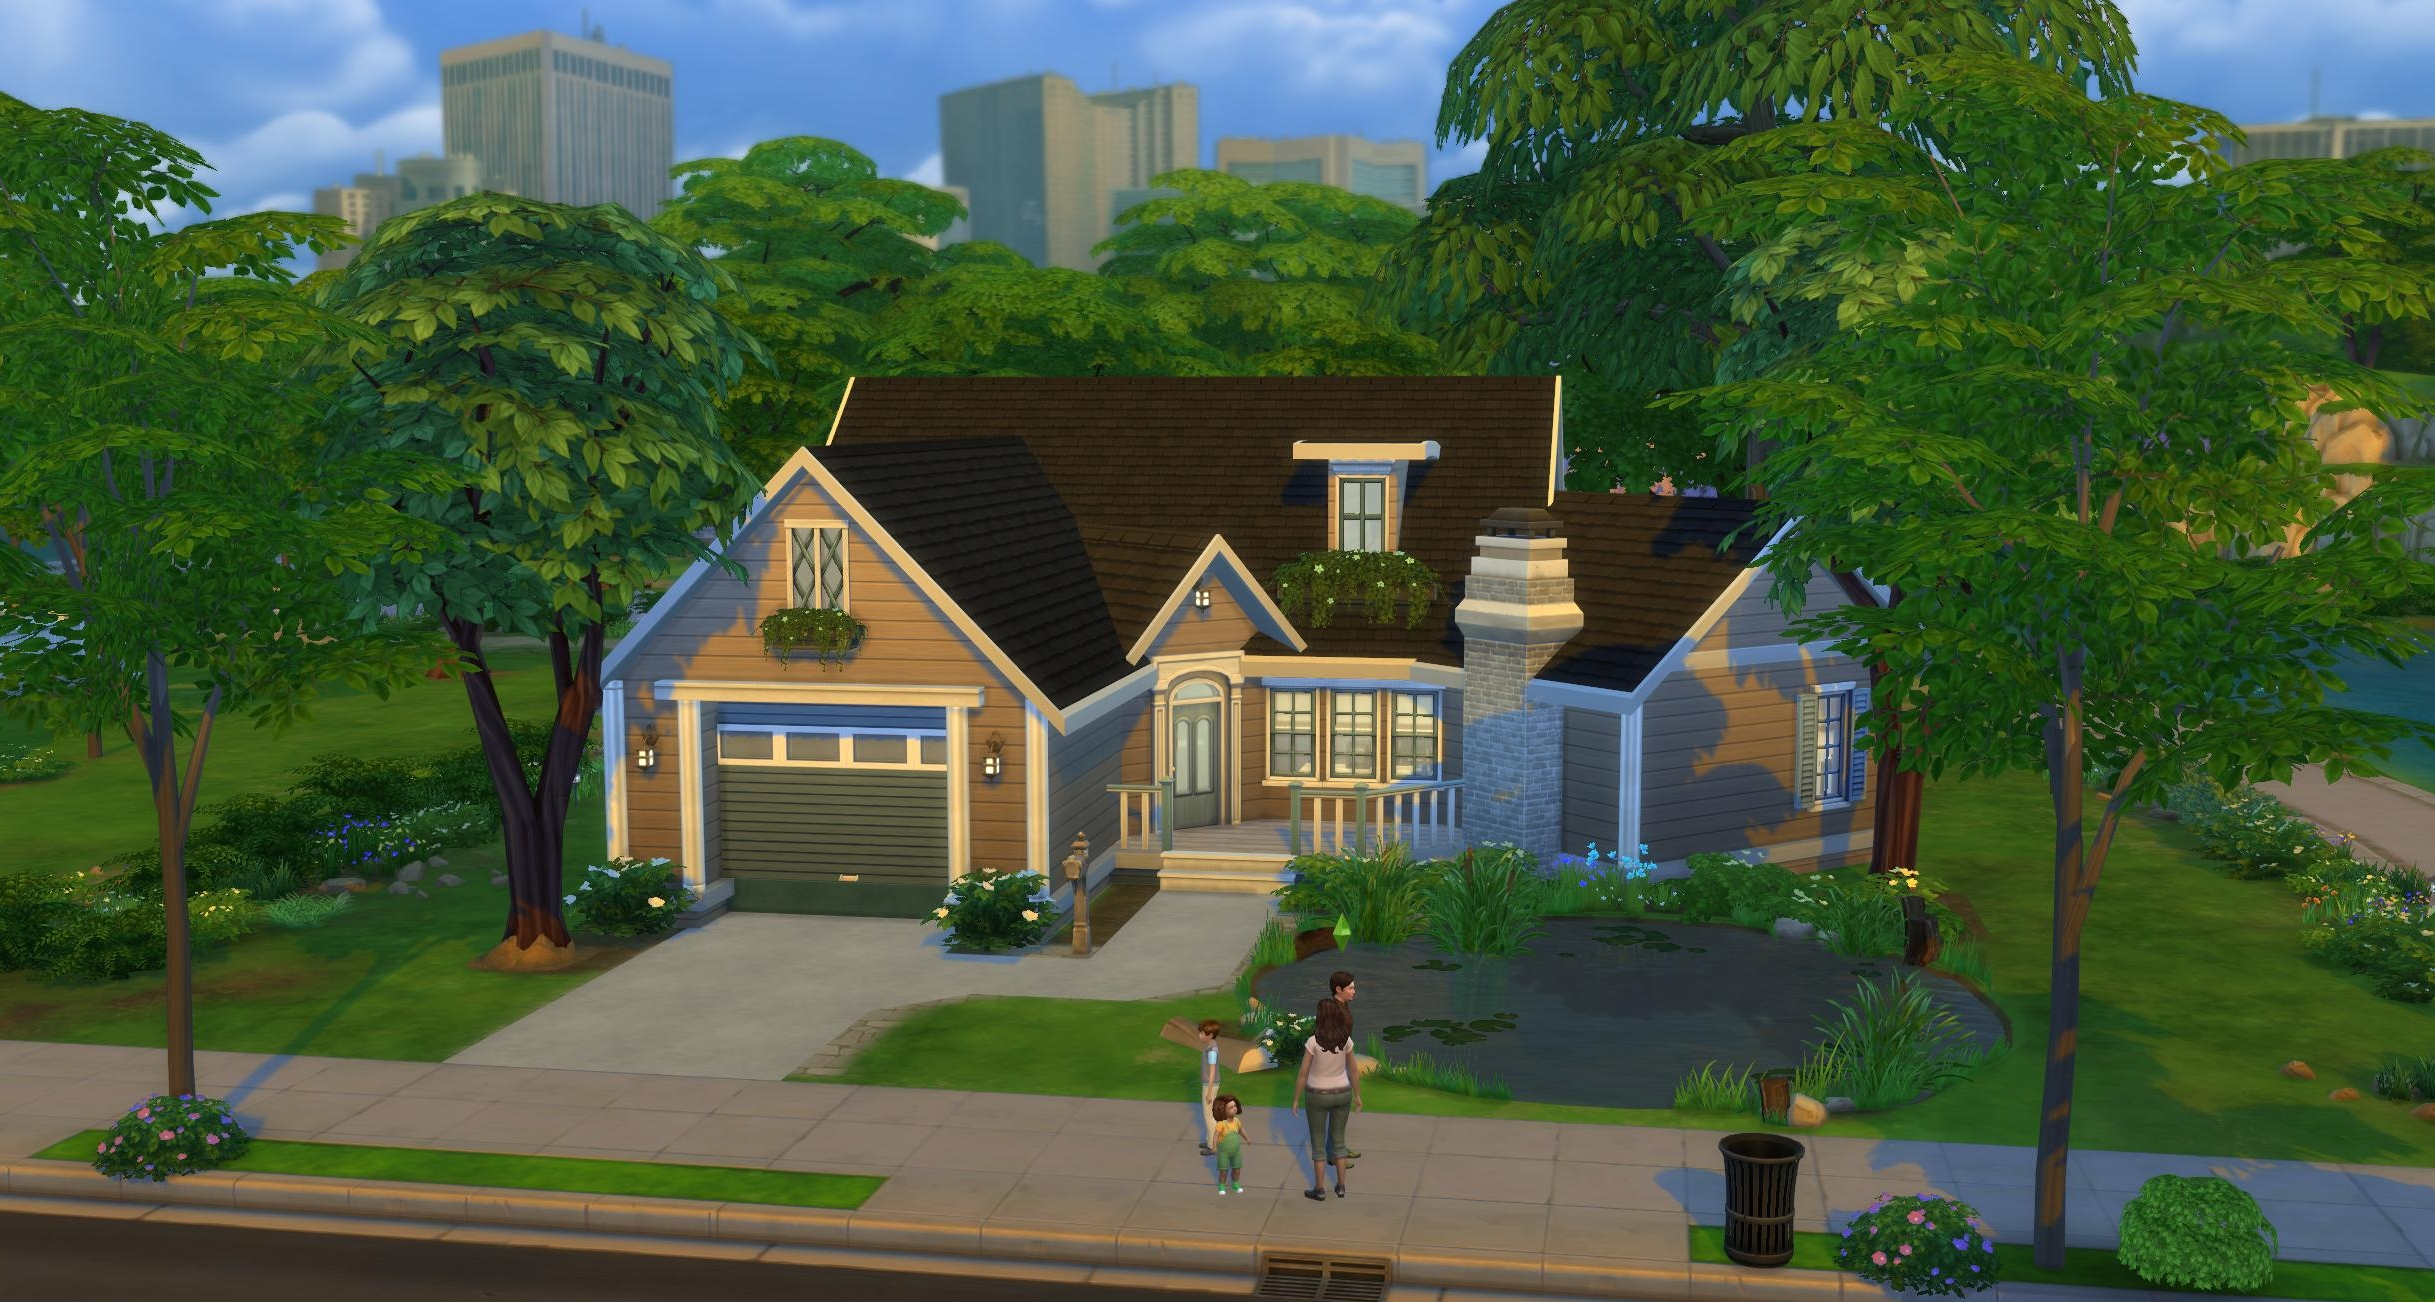 The Sims 4: How to Start with a Better Home